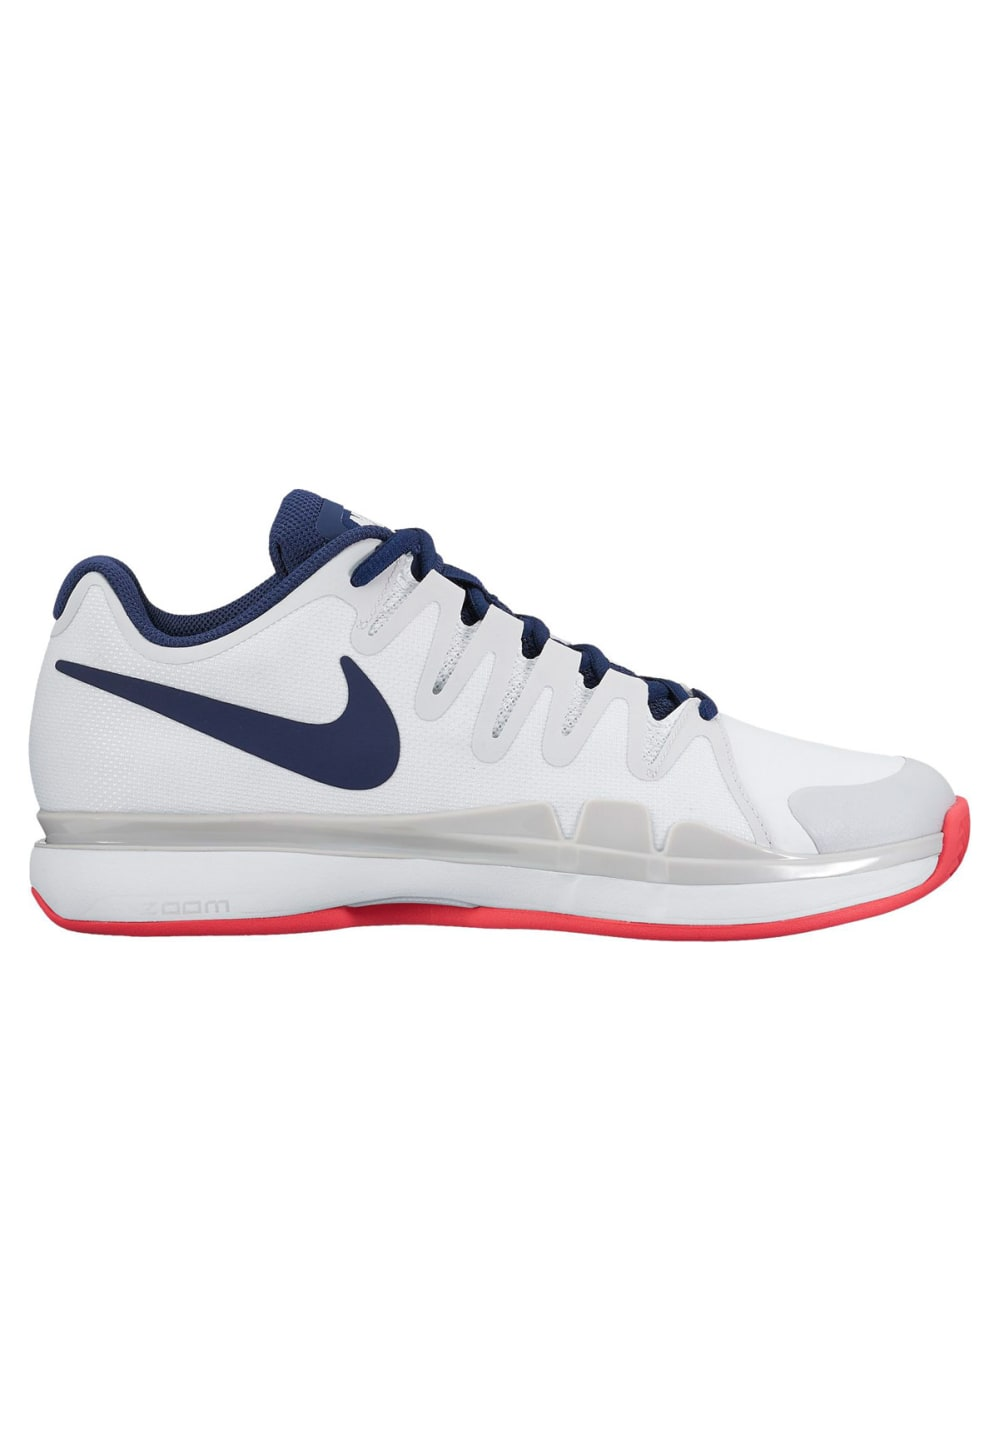 a6ae987e03c1a Next. -60%. This product is currently out of stock. Nike. Zoom Vapor 9.5  Tour Clay - Tennis Shoes for Women